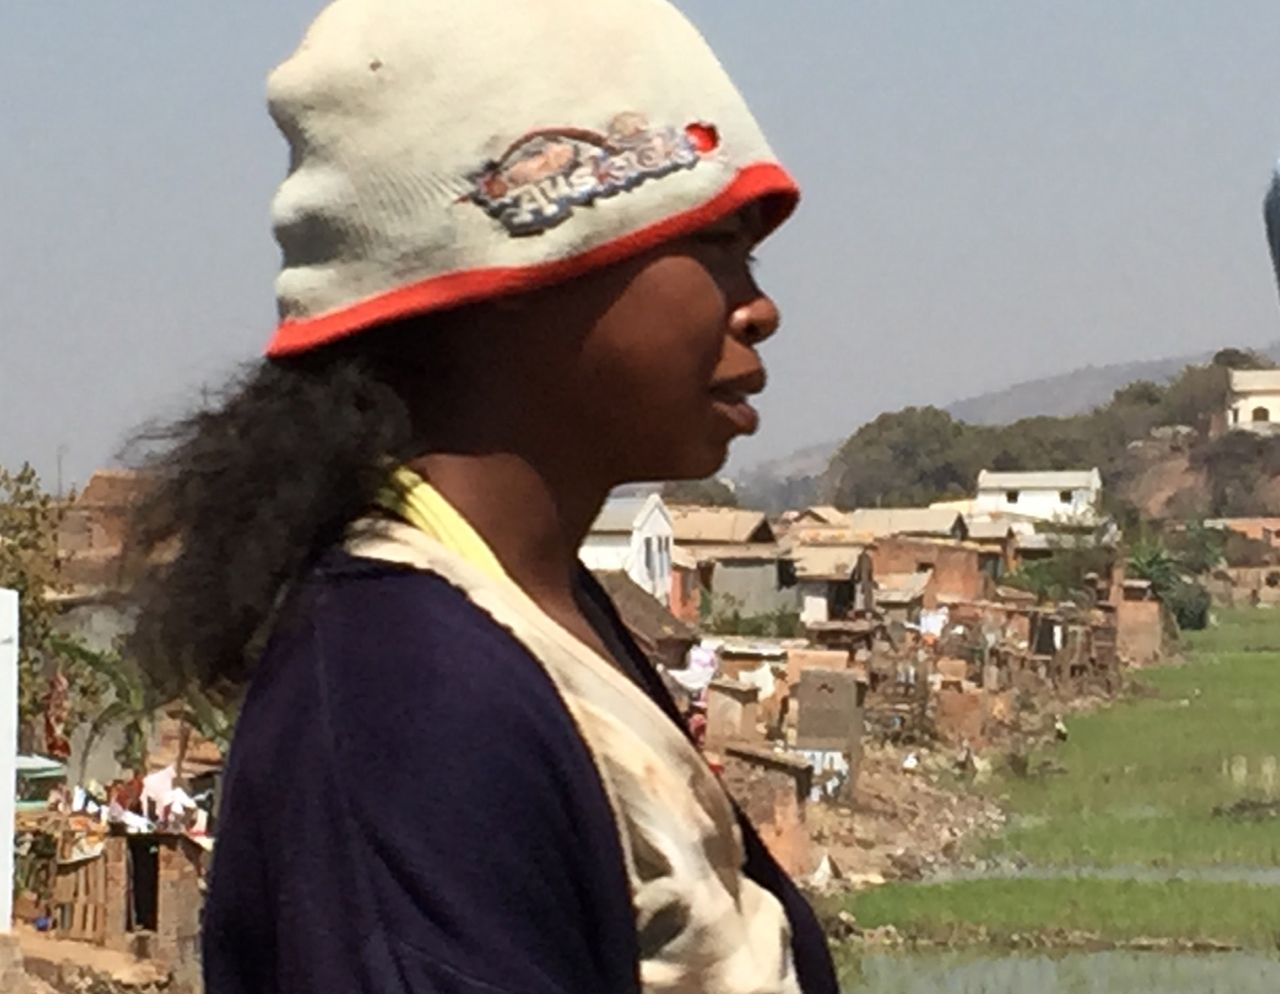 A young Malagasy woman walks along the road from the Antananarivo, the capital city of Madagascar to the airport, through congested traffic and terrible air pollution.